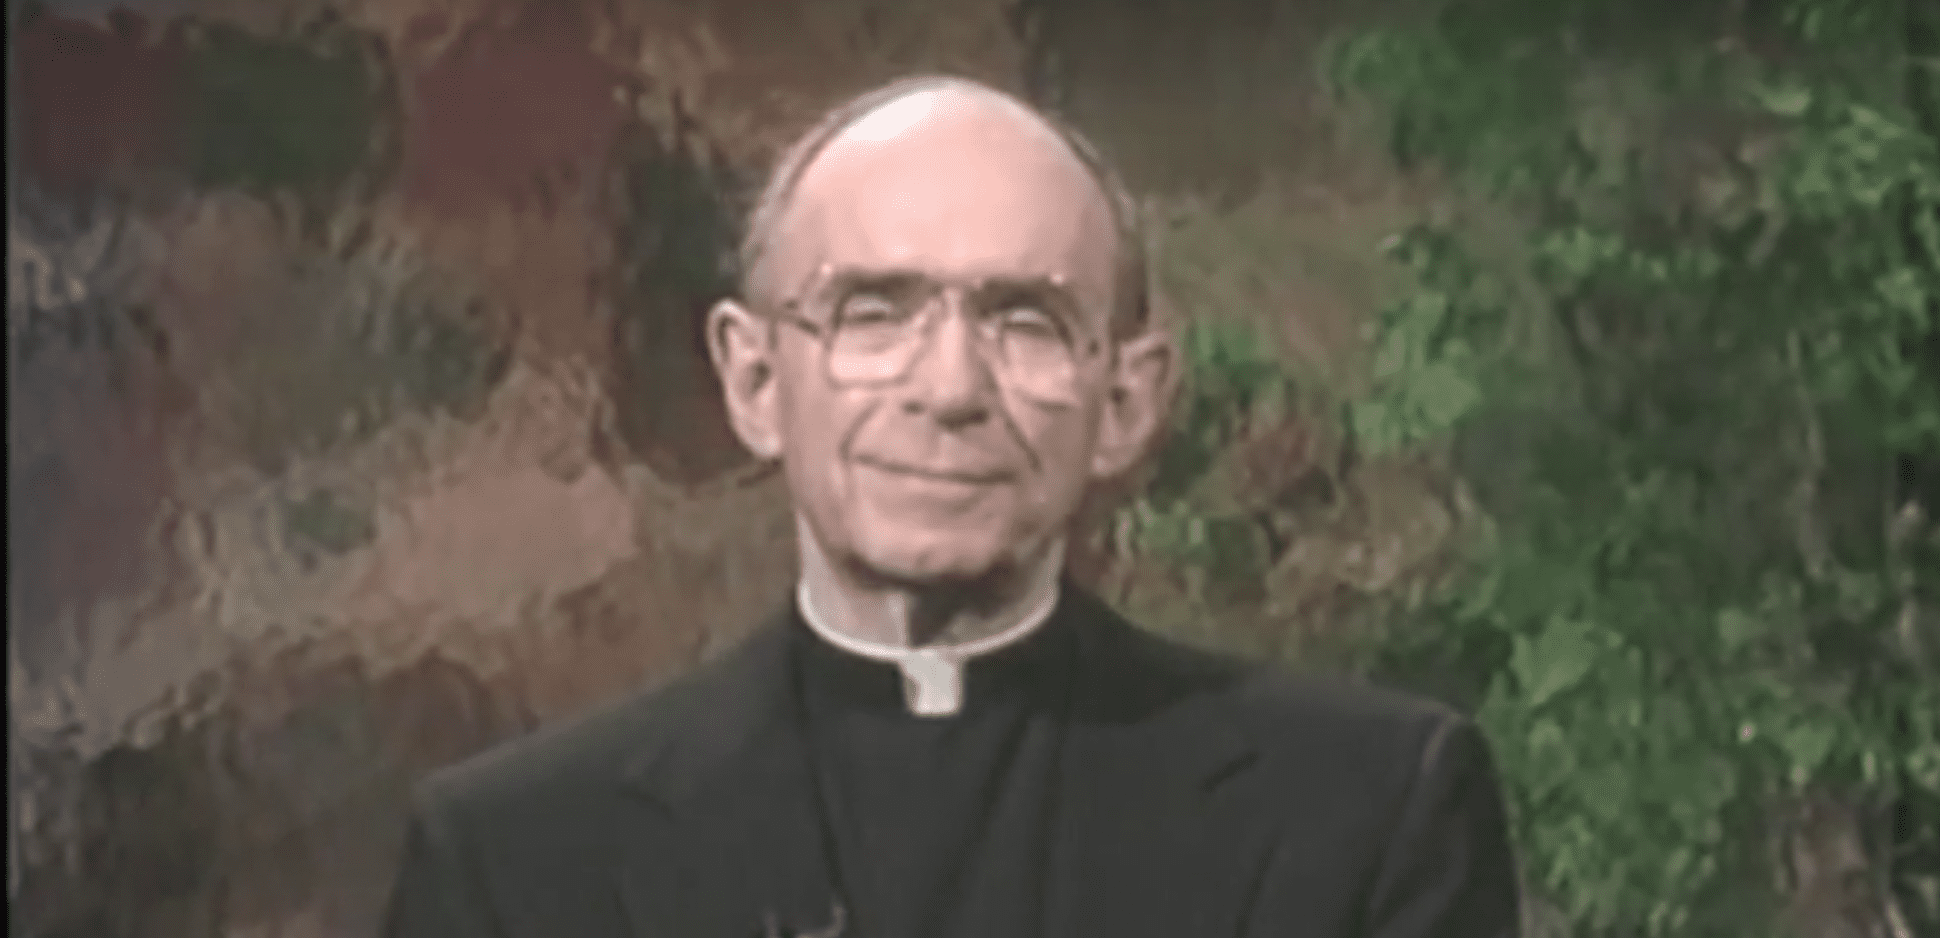 FrancisChurch Strains at the Gnat and Swallows the Camel | The American Spectator | Politics Is Too Important To Be Taken Seriously.